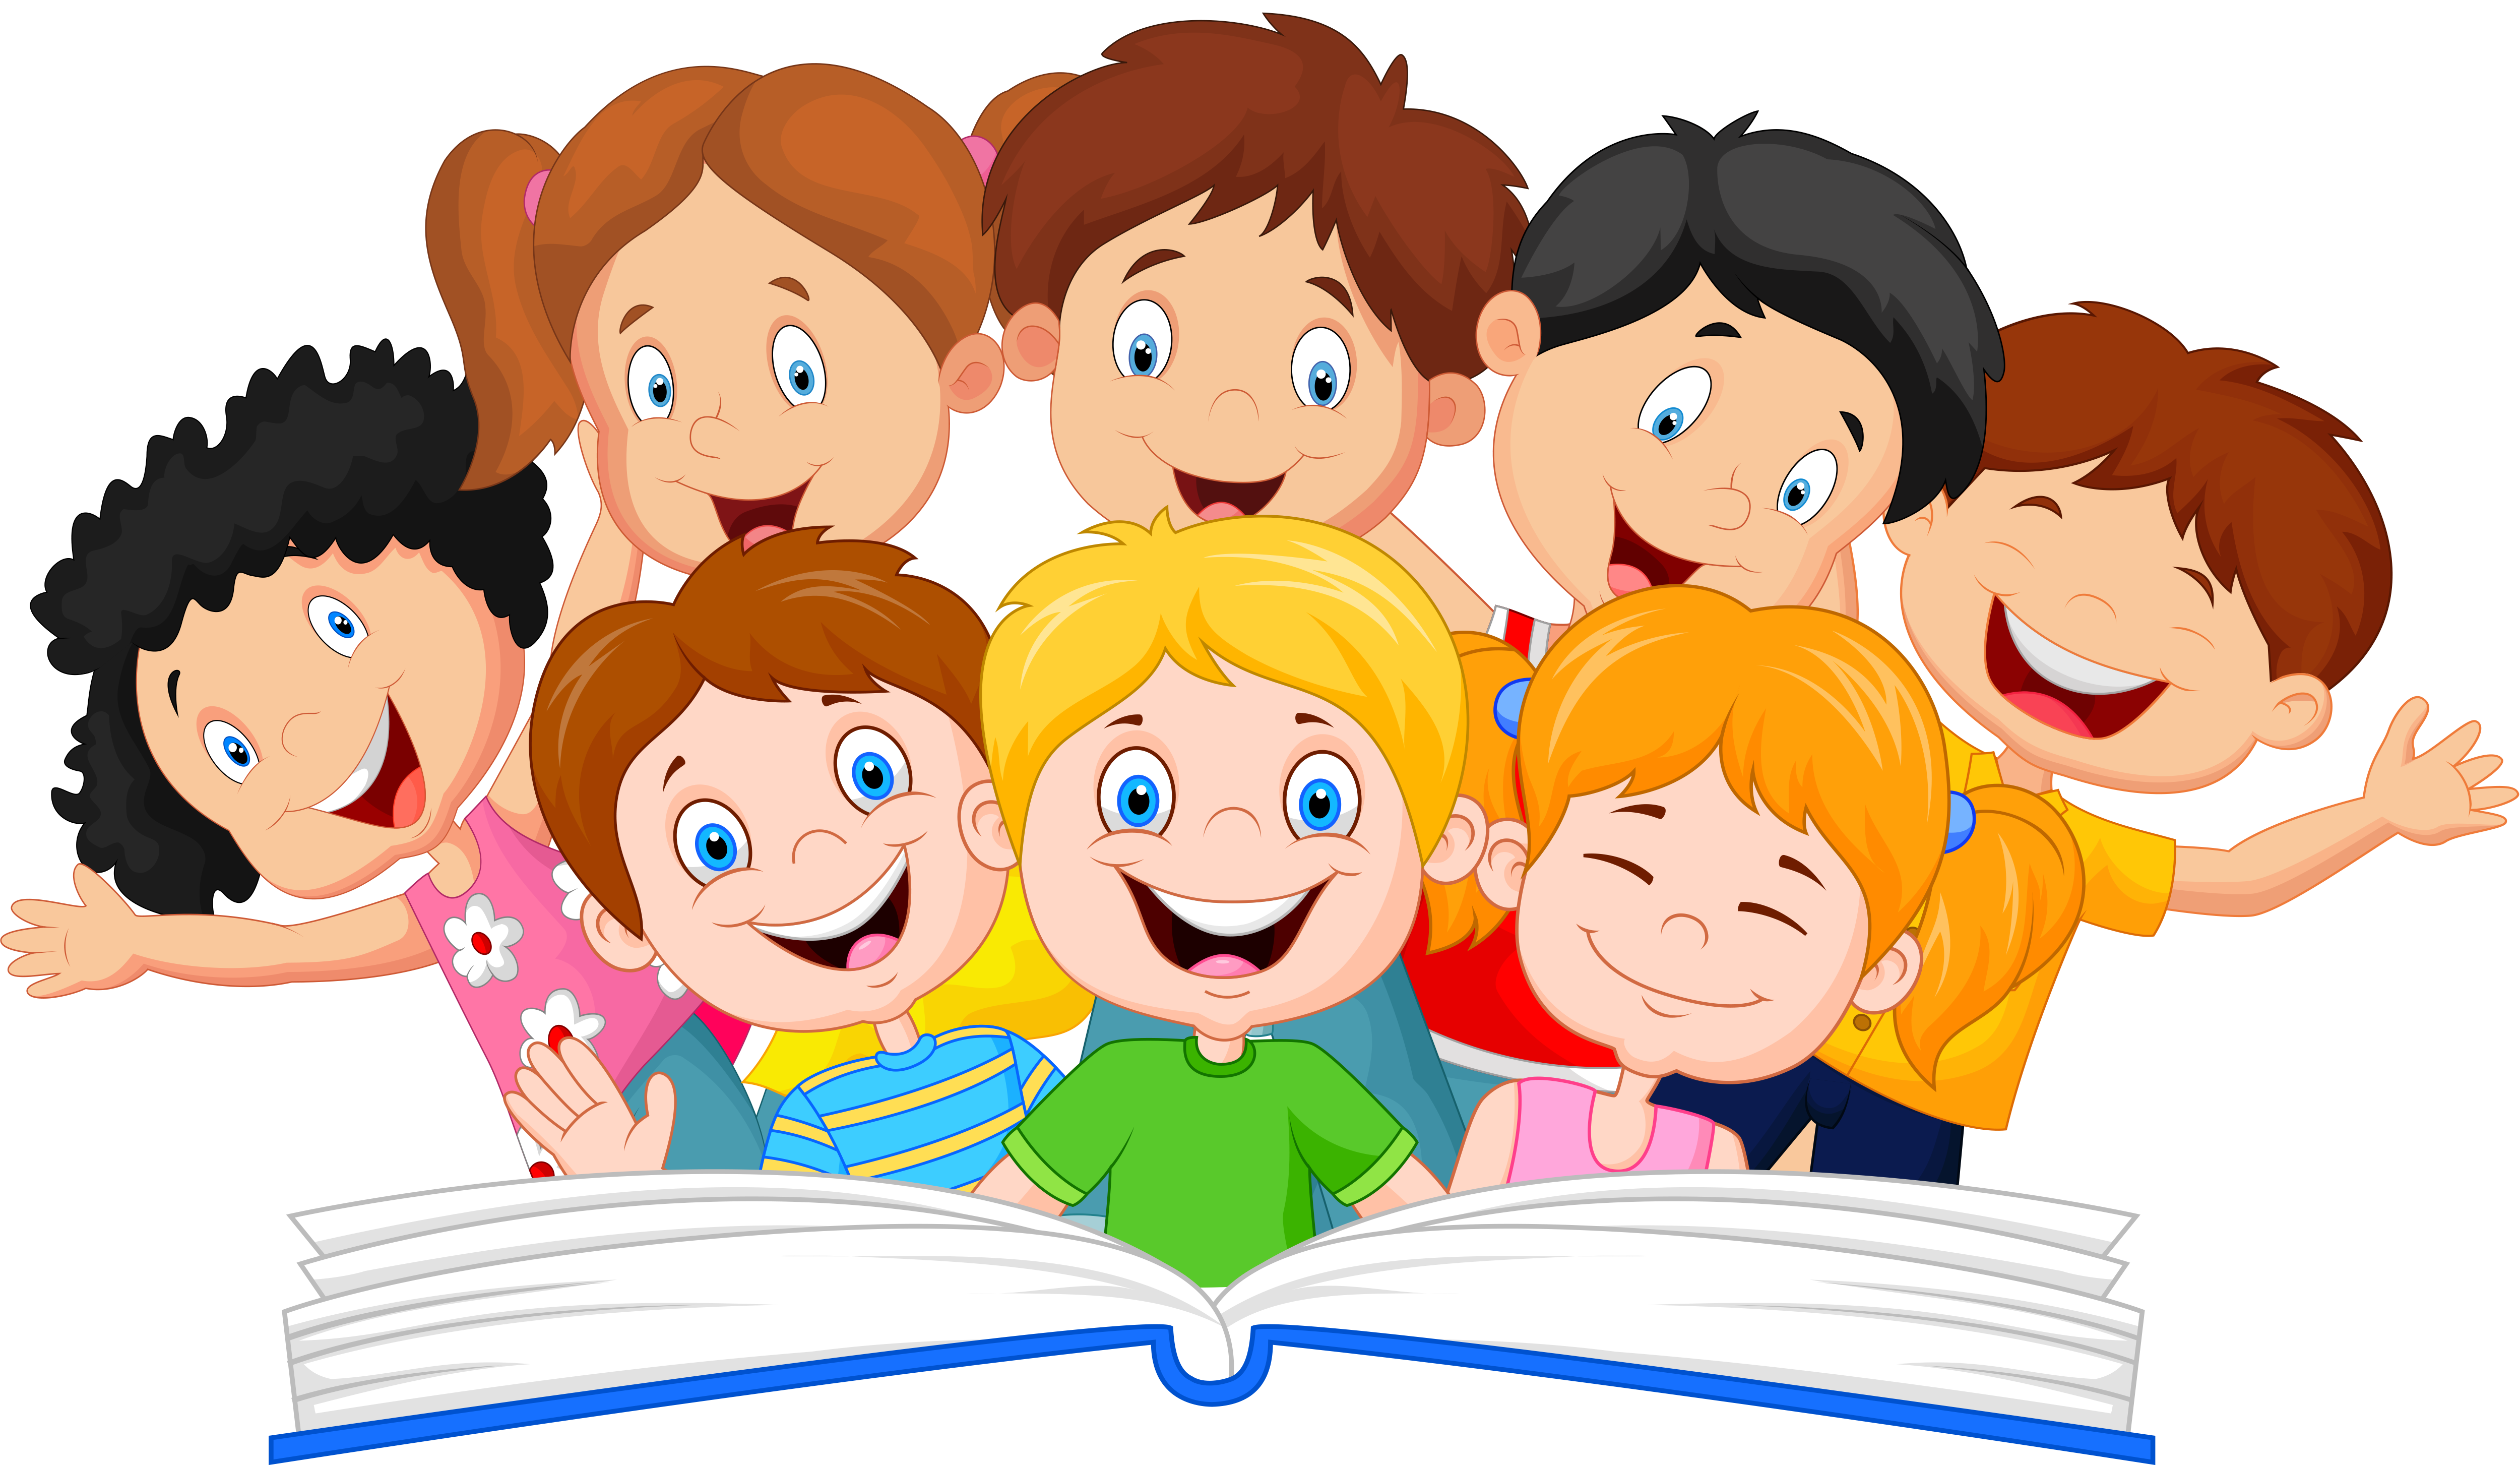 Kids reading at getdrawings. Wet clipart wet kid